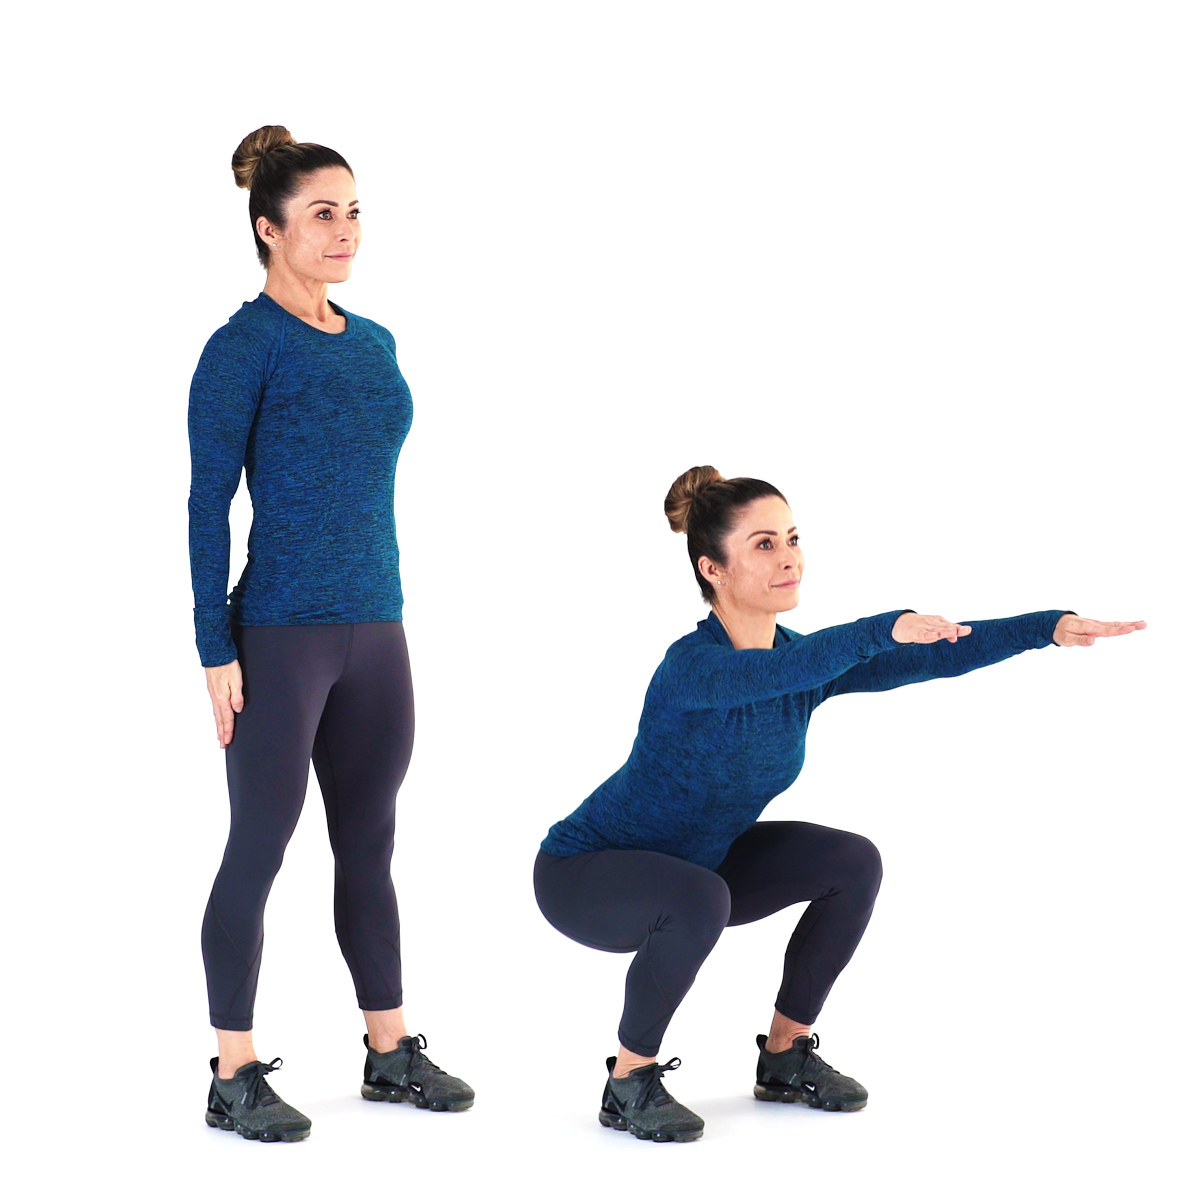 Two step photo of person performing a squatting exercise.